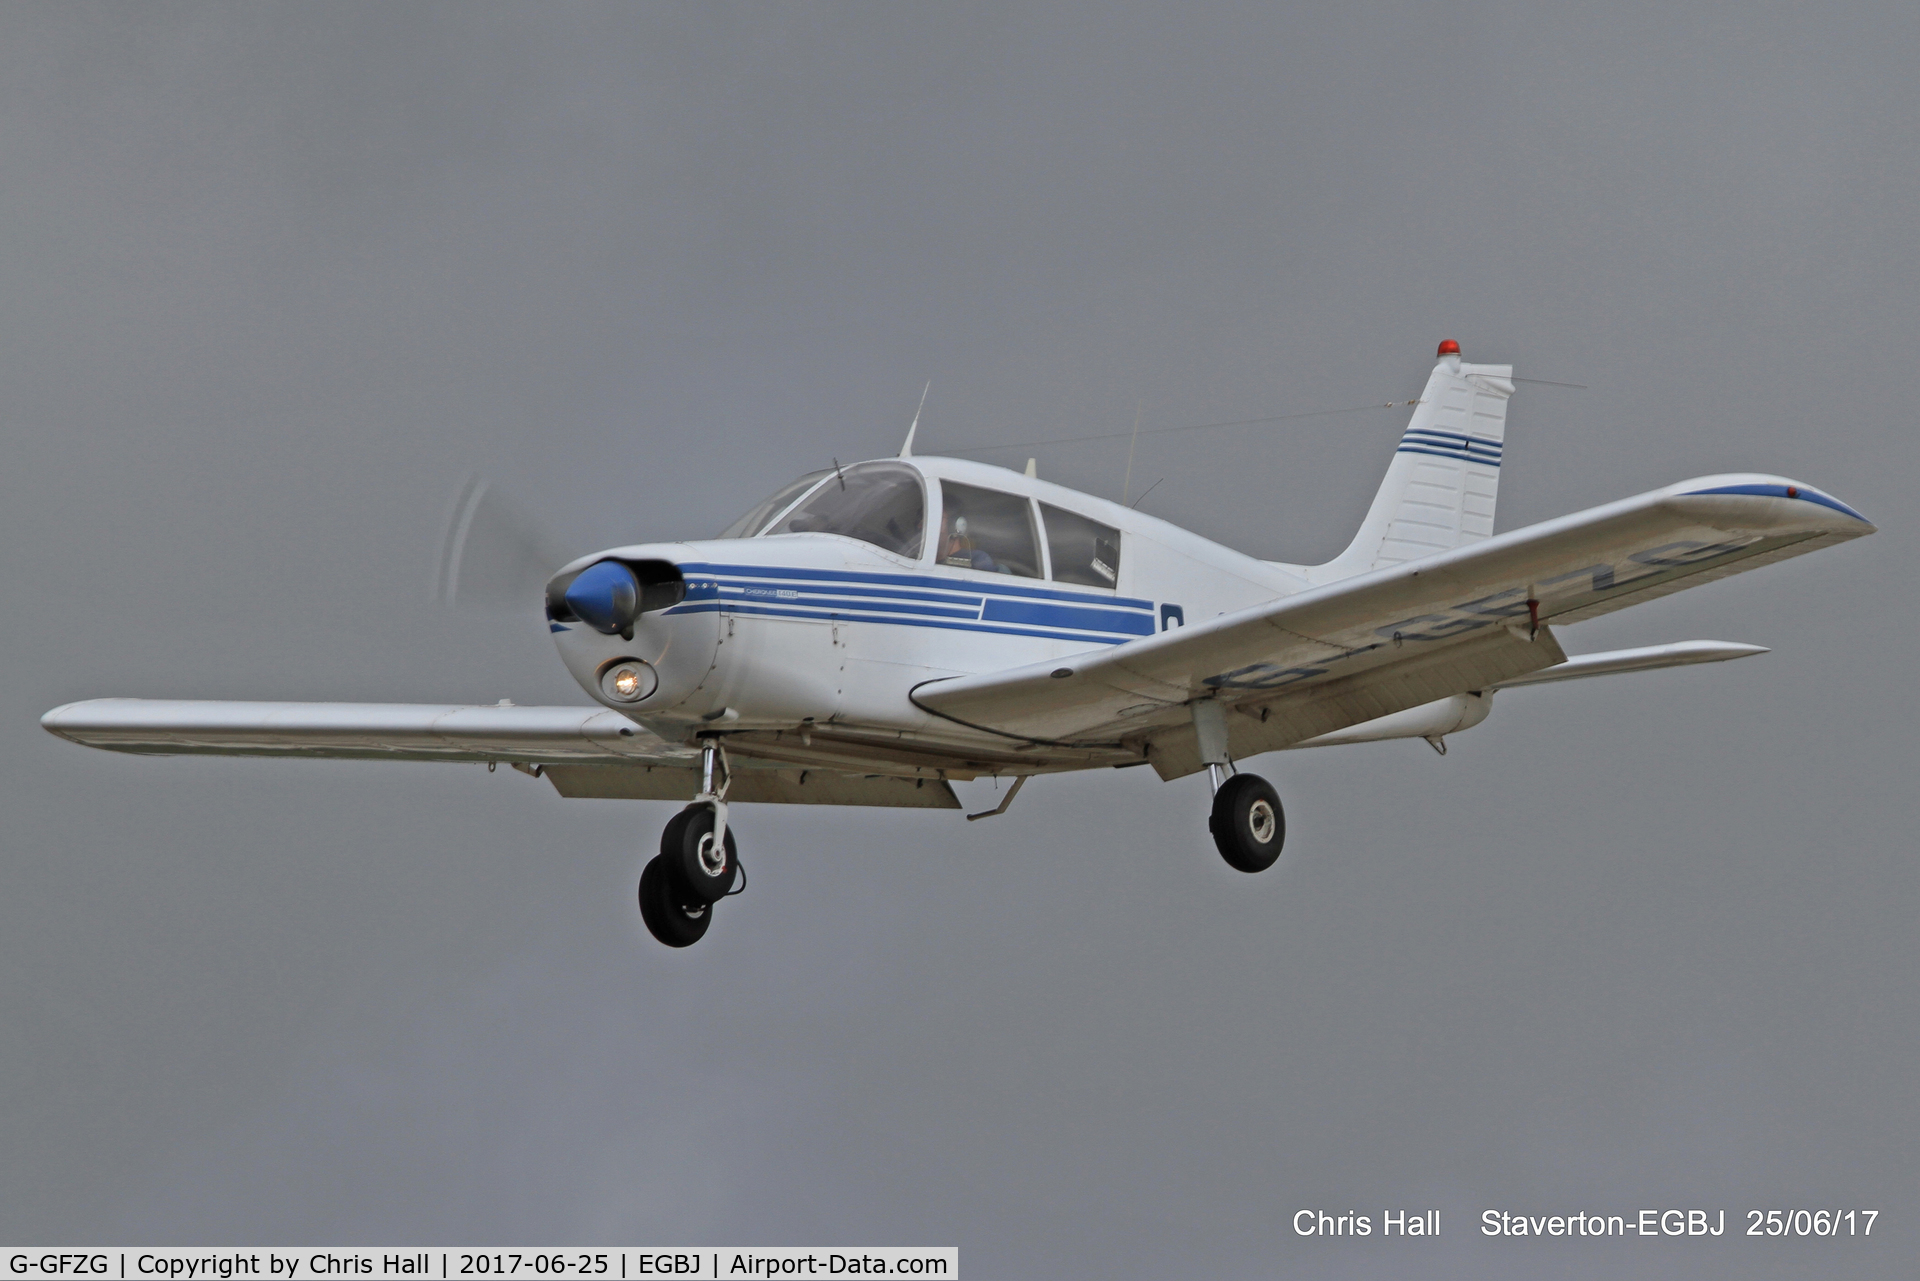 G-GFZG, 1973 Piper PA-28-140 Cherokee C/N 28-7225350, Project Propeller at Staverton